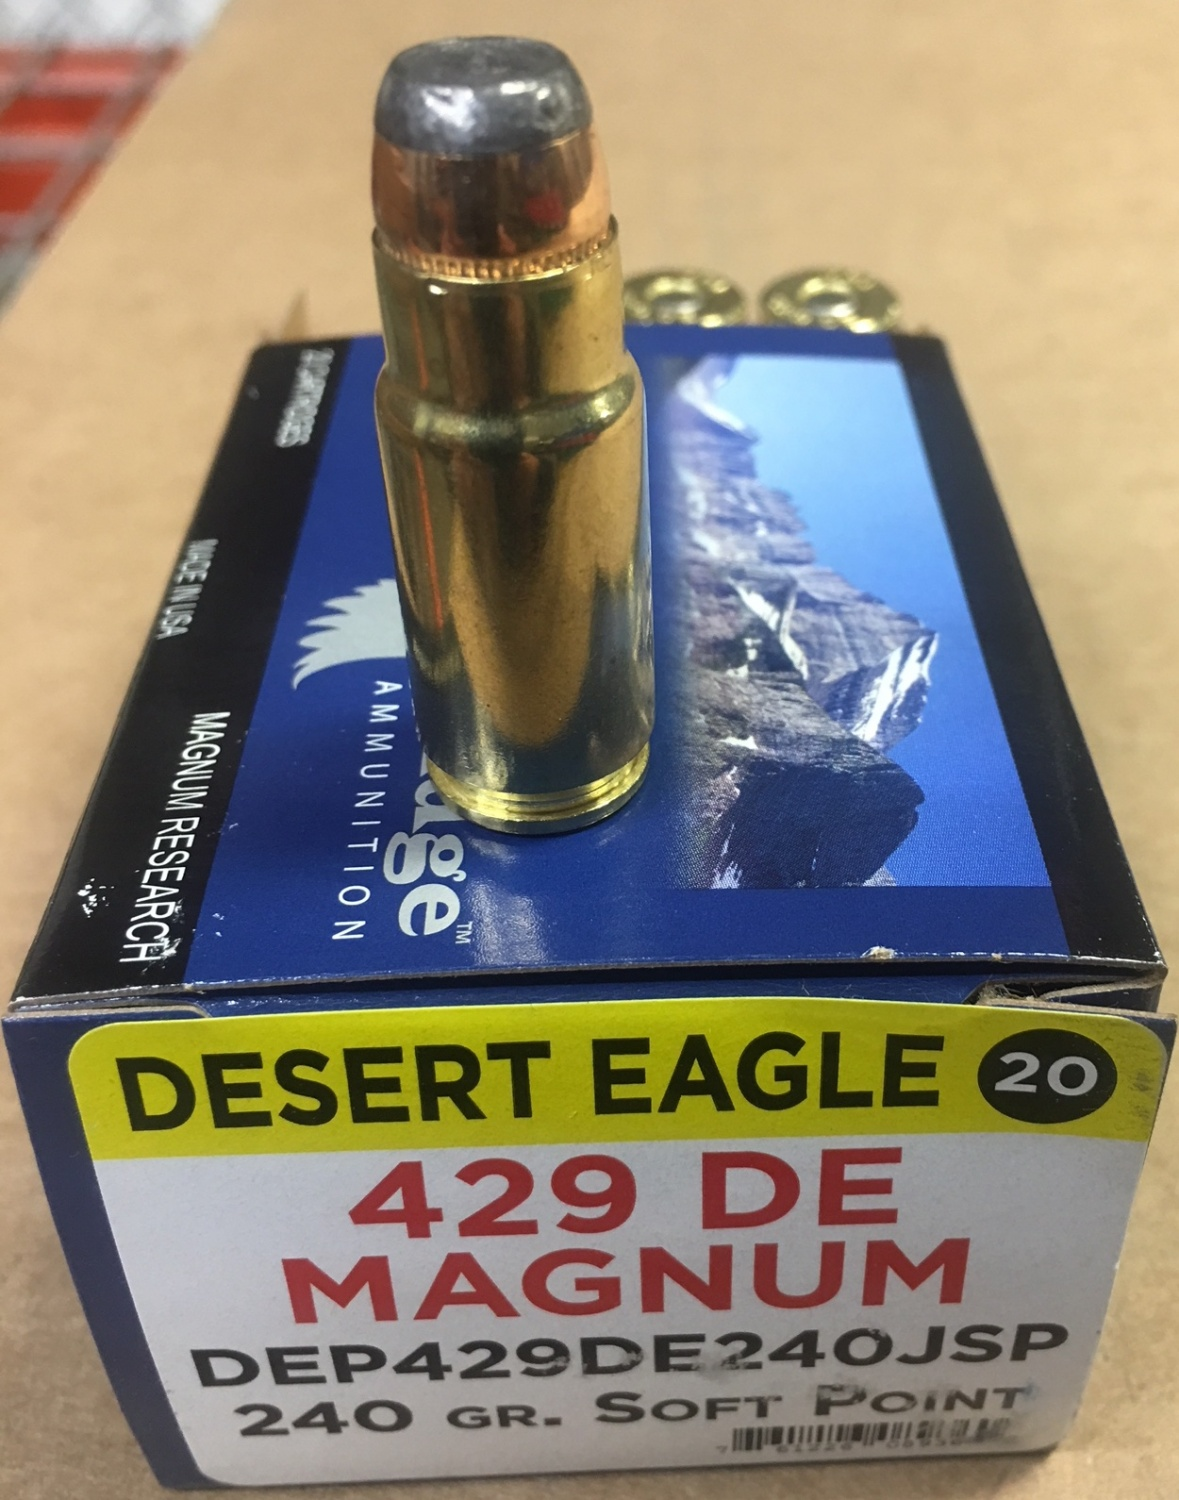 .429 DE - New Cartridge for Desert Eagle Pistol (2)